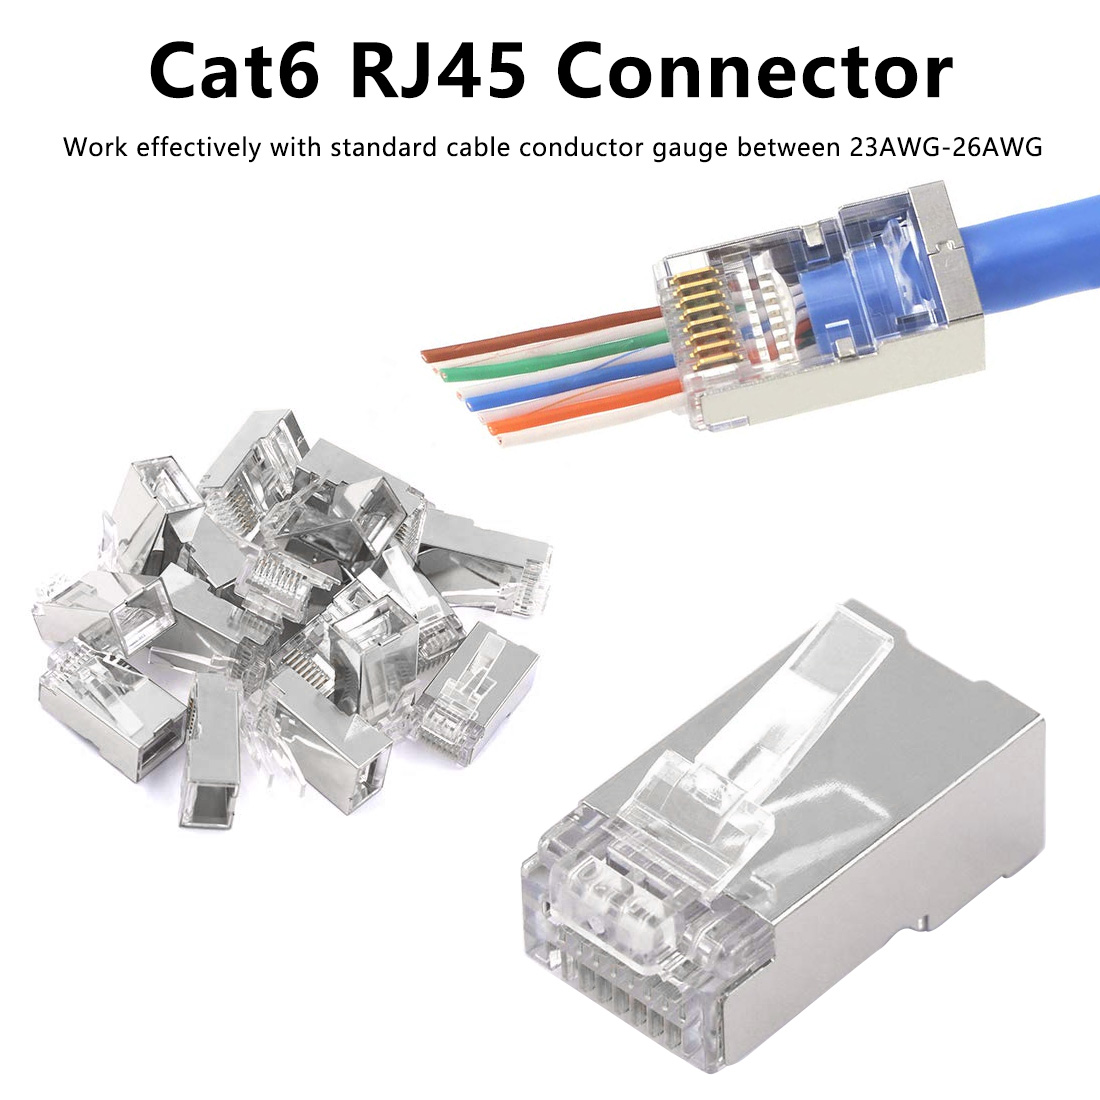 Ethernet-Cable-Head-Plug Connector Networkingcable RJ45 Cat 6-Crimp Modular Gold-Plated